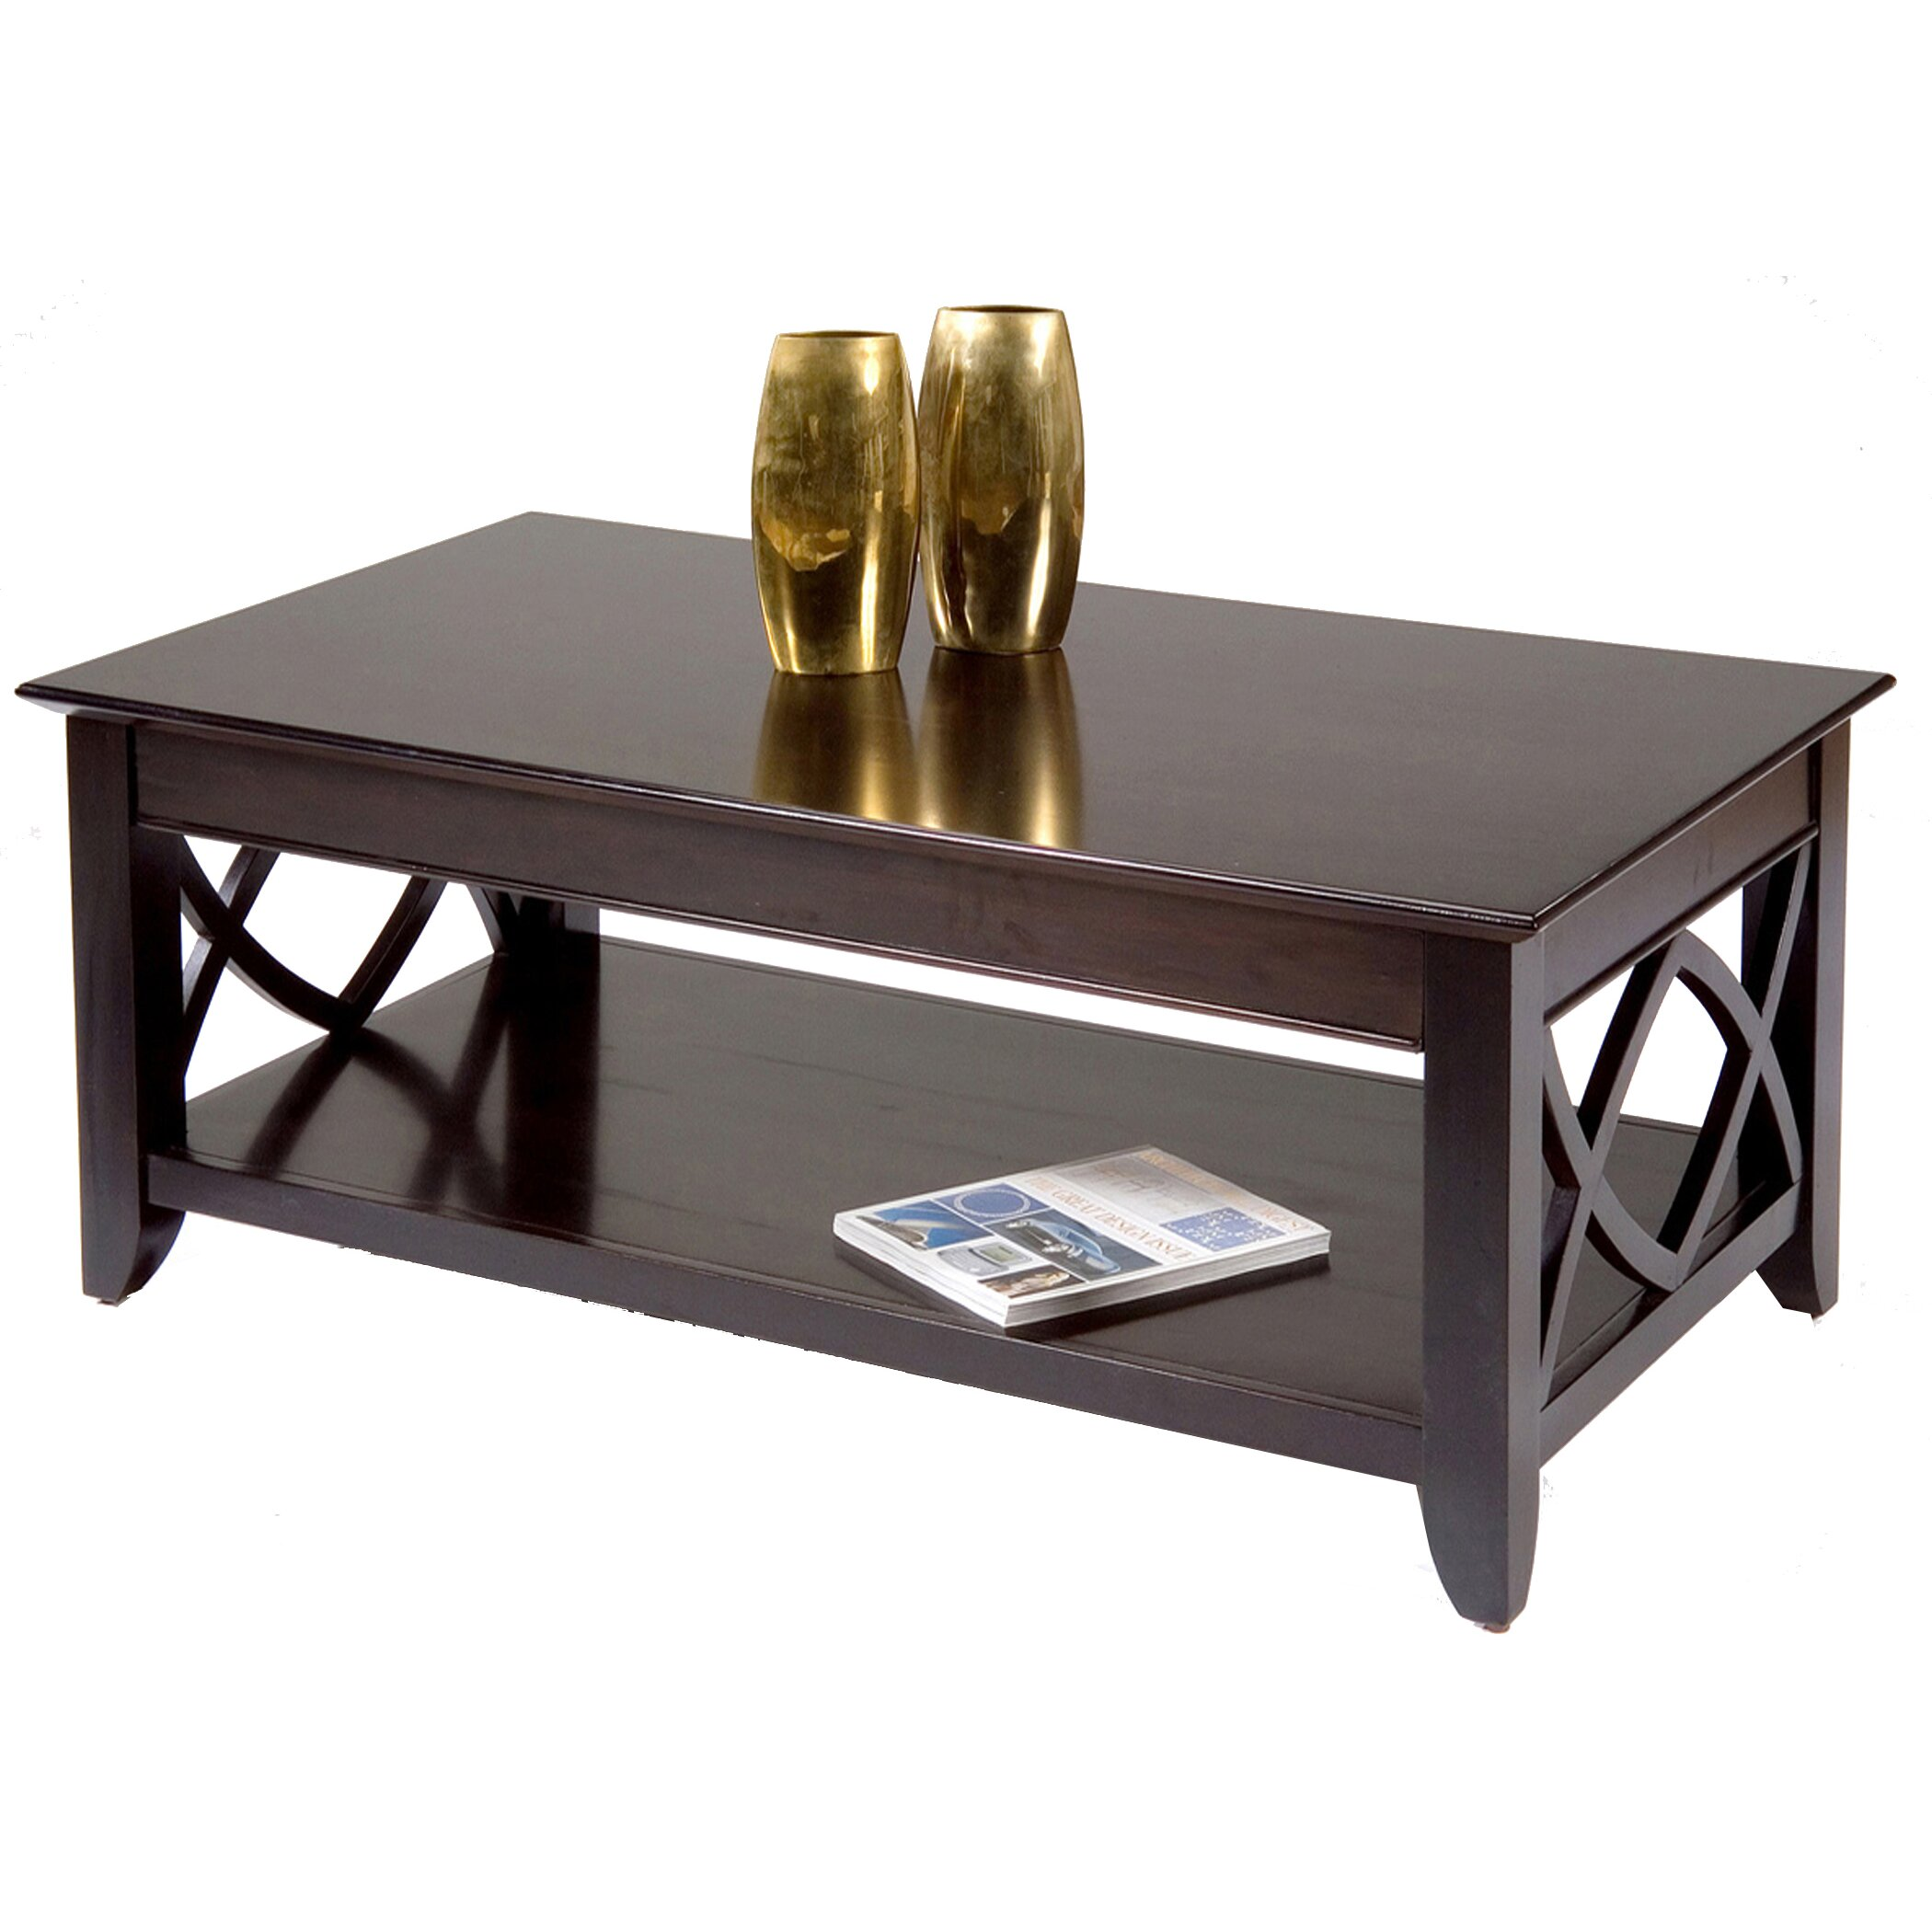 Wildon home coffee table reviews wayfair for Table x reviews